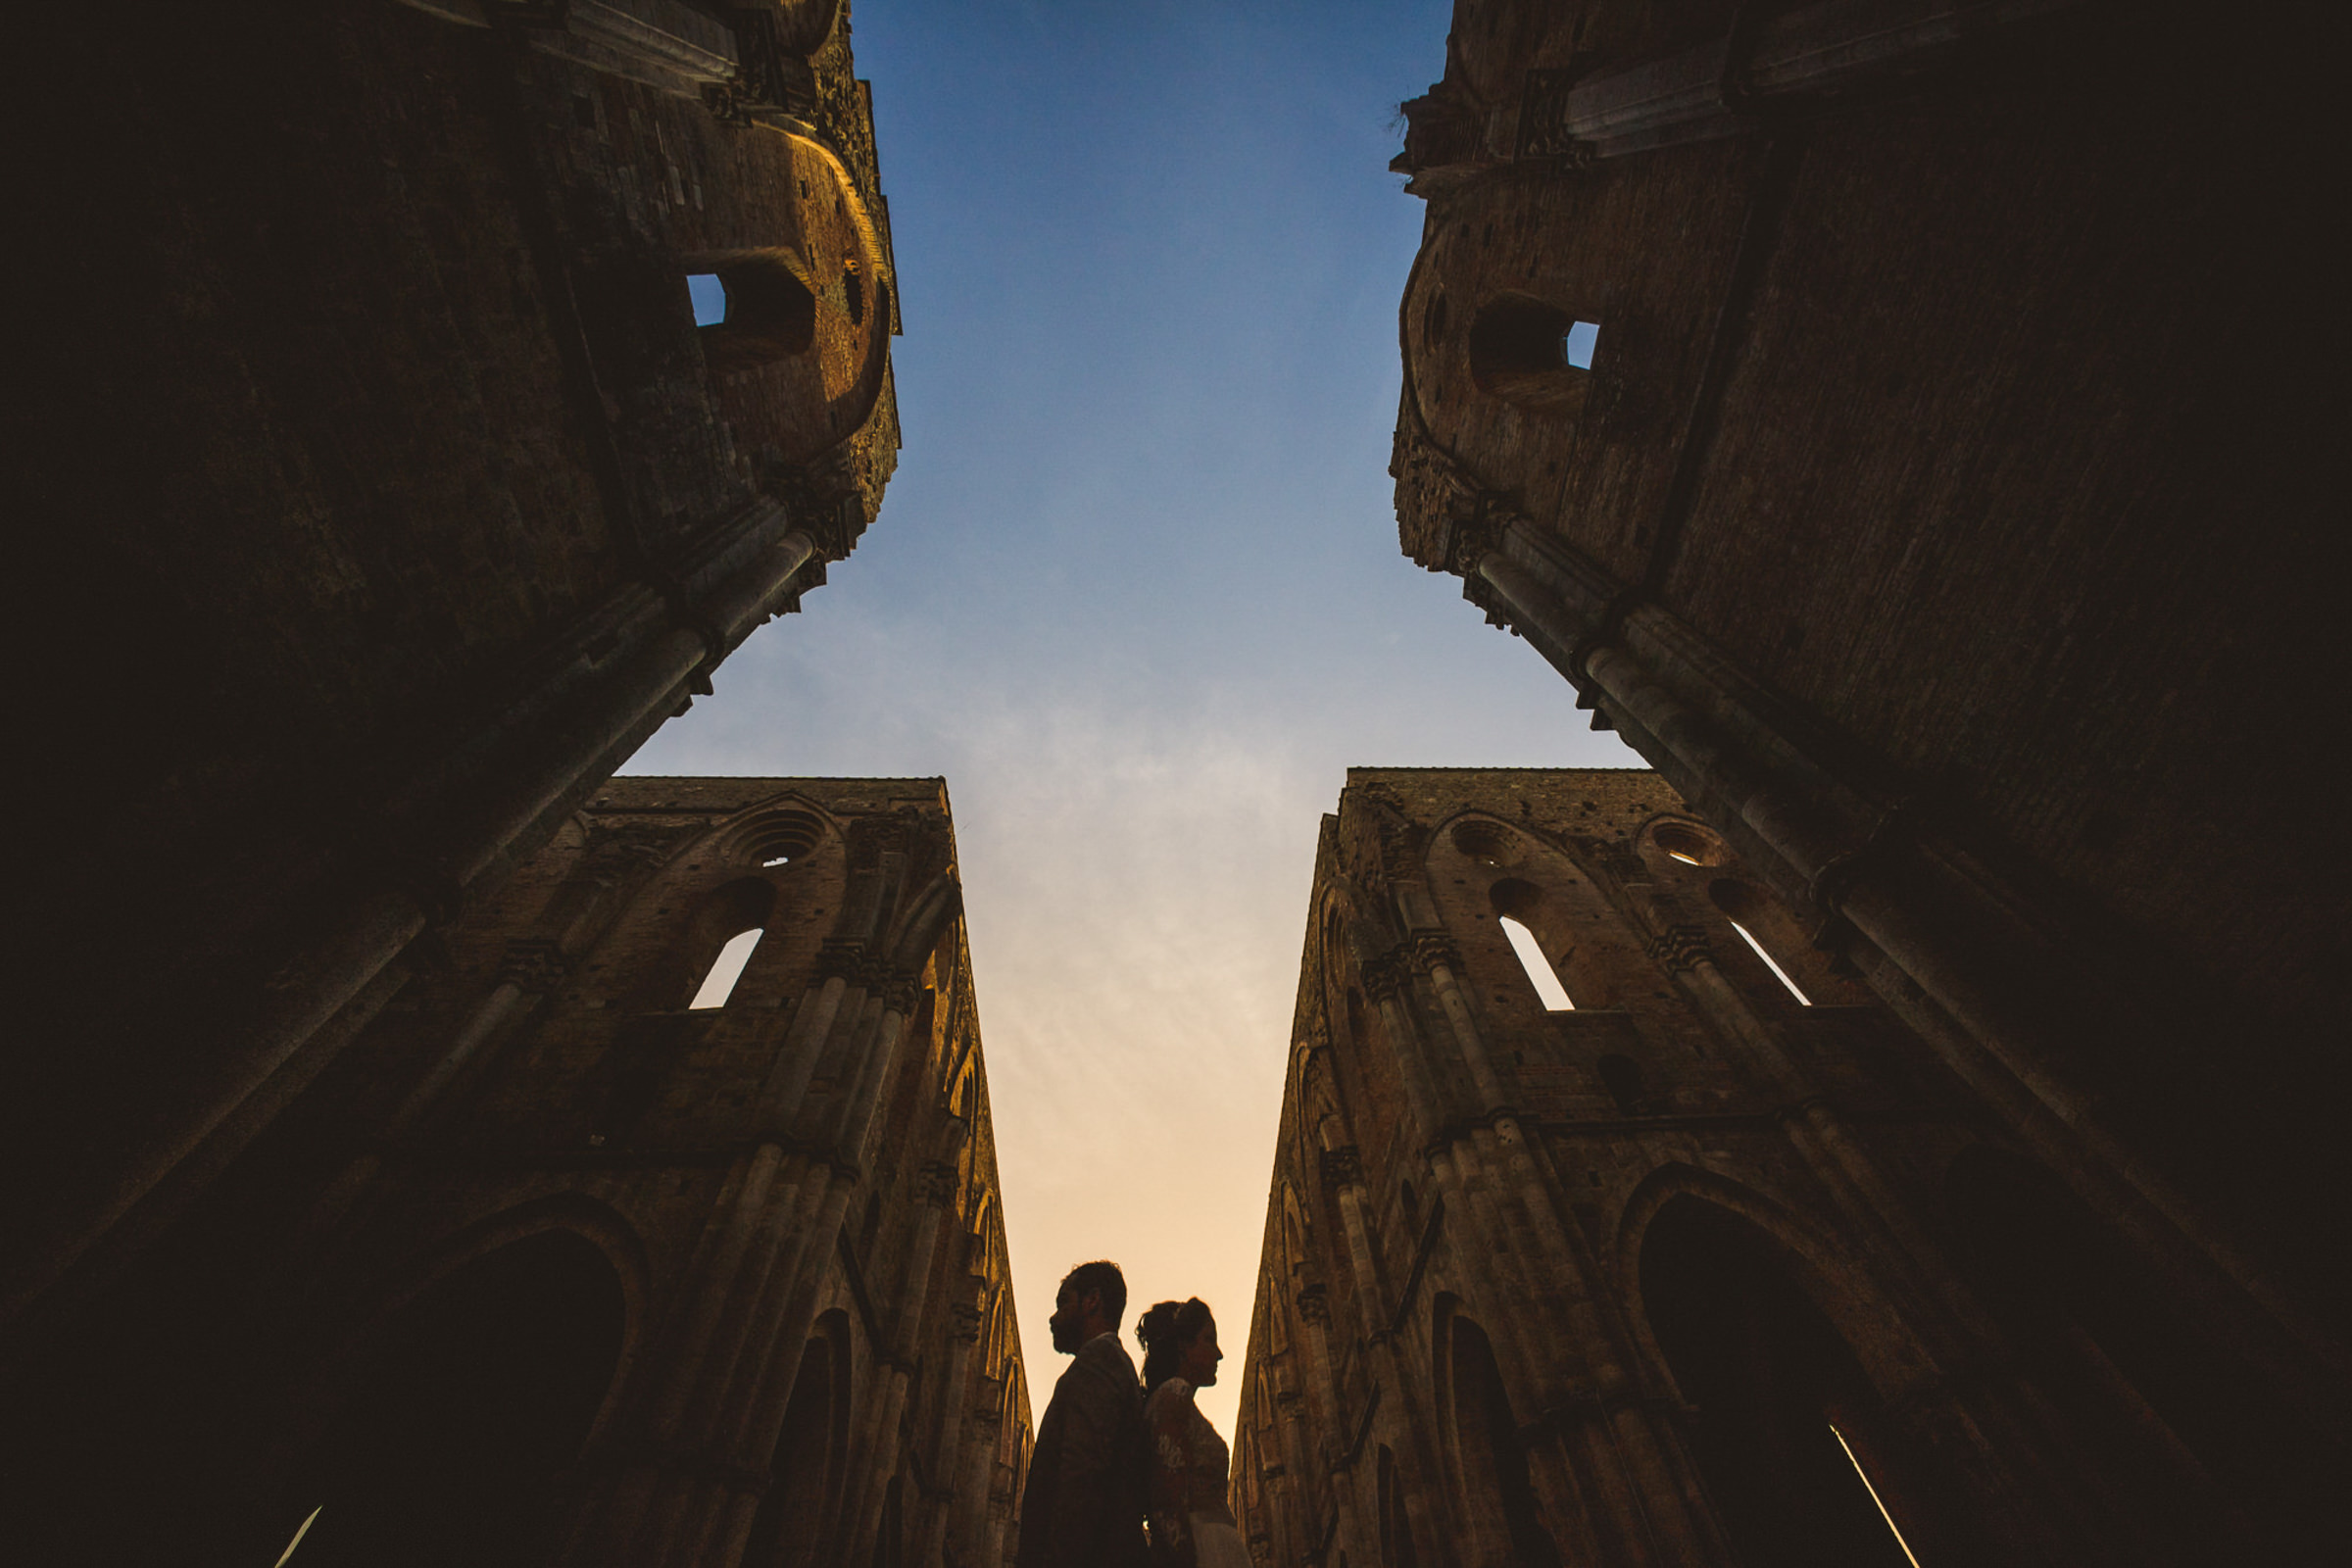 Couple silhouette between stone buildings - photo by Sam Hurd - DC